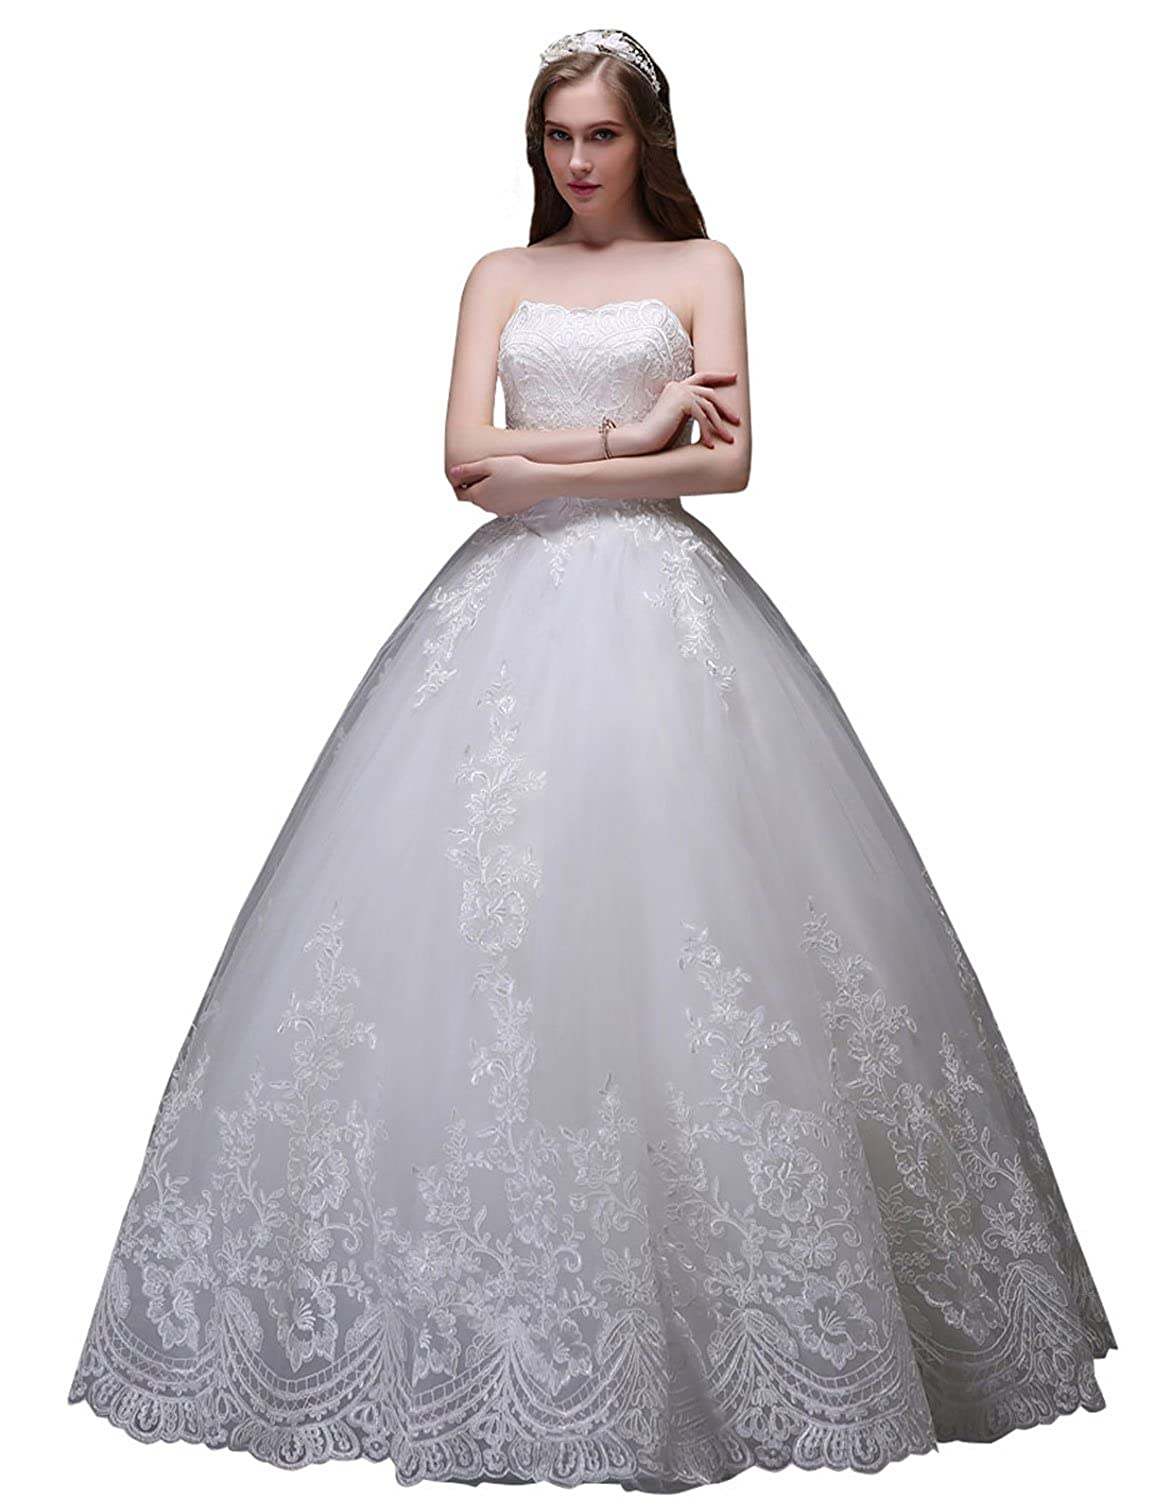 Sarahbridal Women's Strapless Ball Gown Brides Wedding Dresses Lace Bridal Gowns SSW035